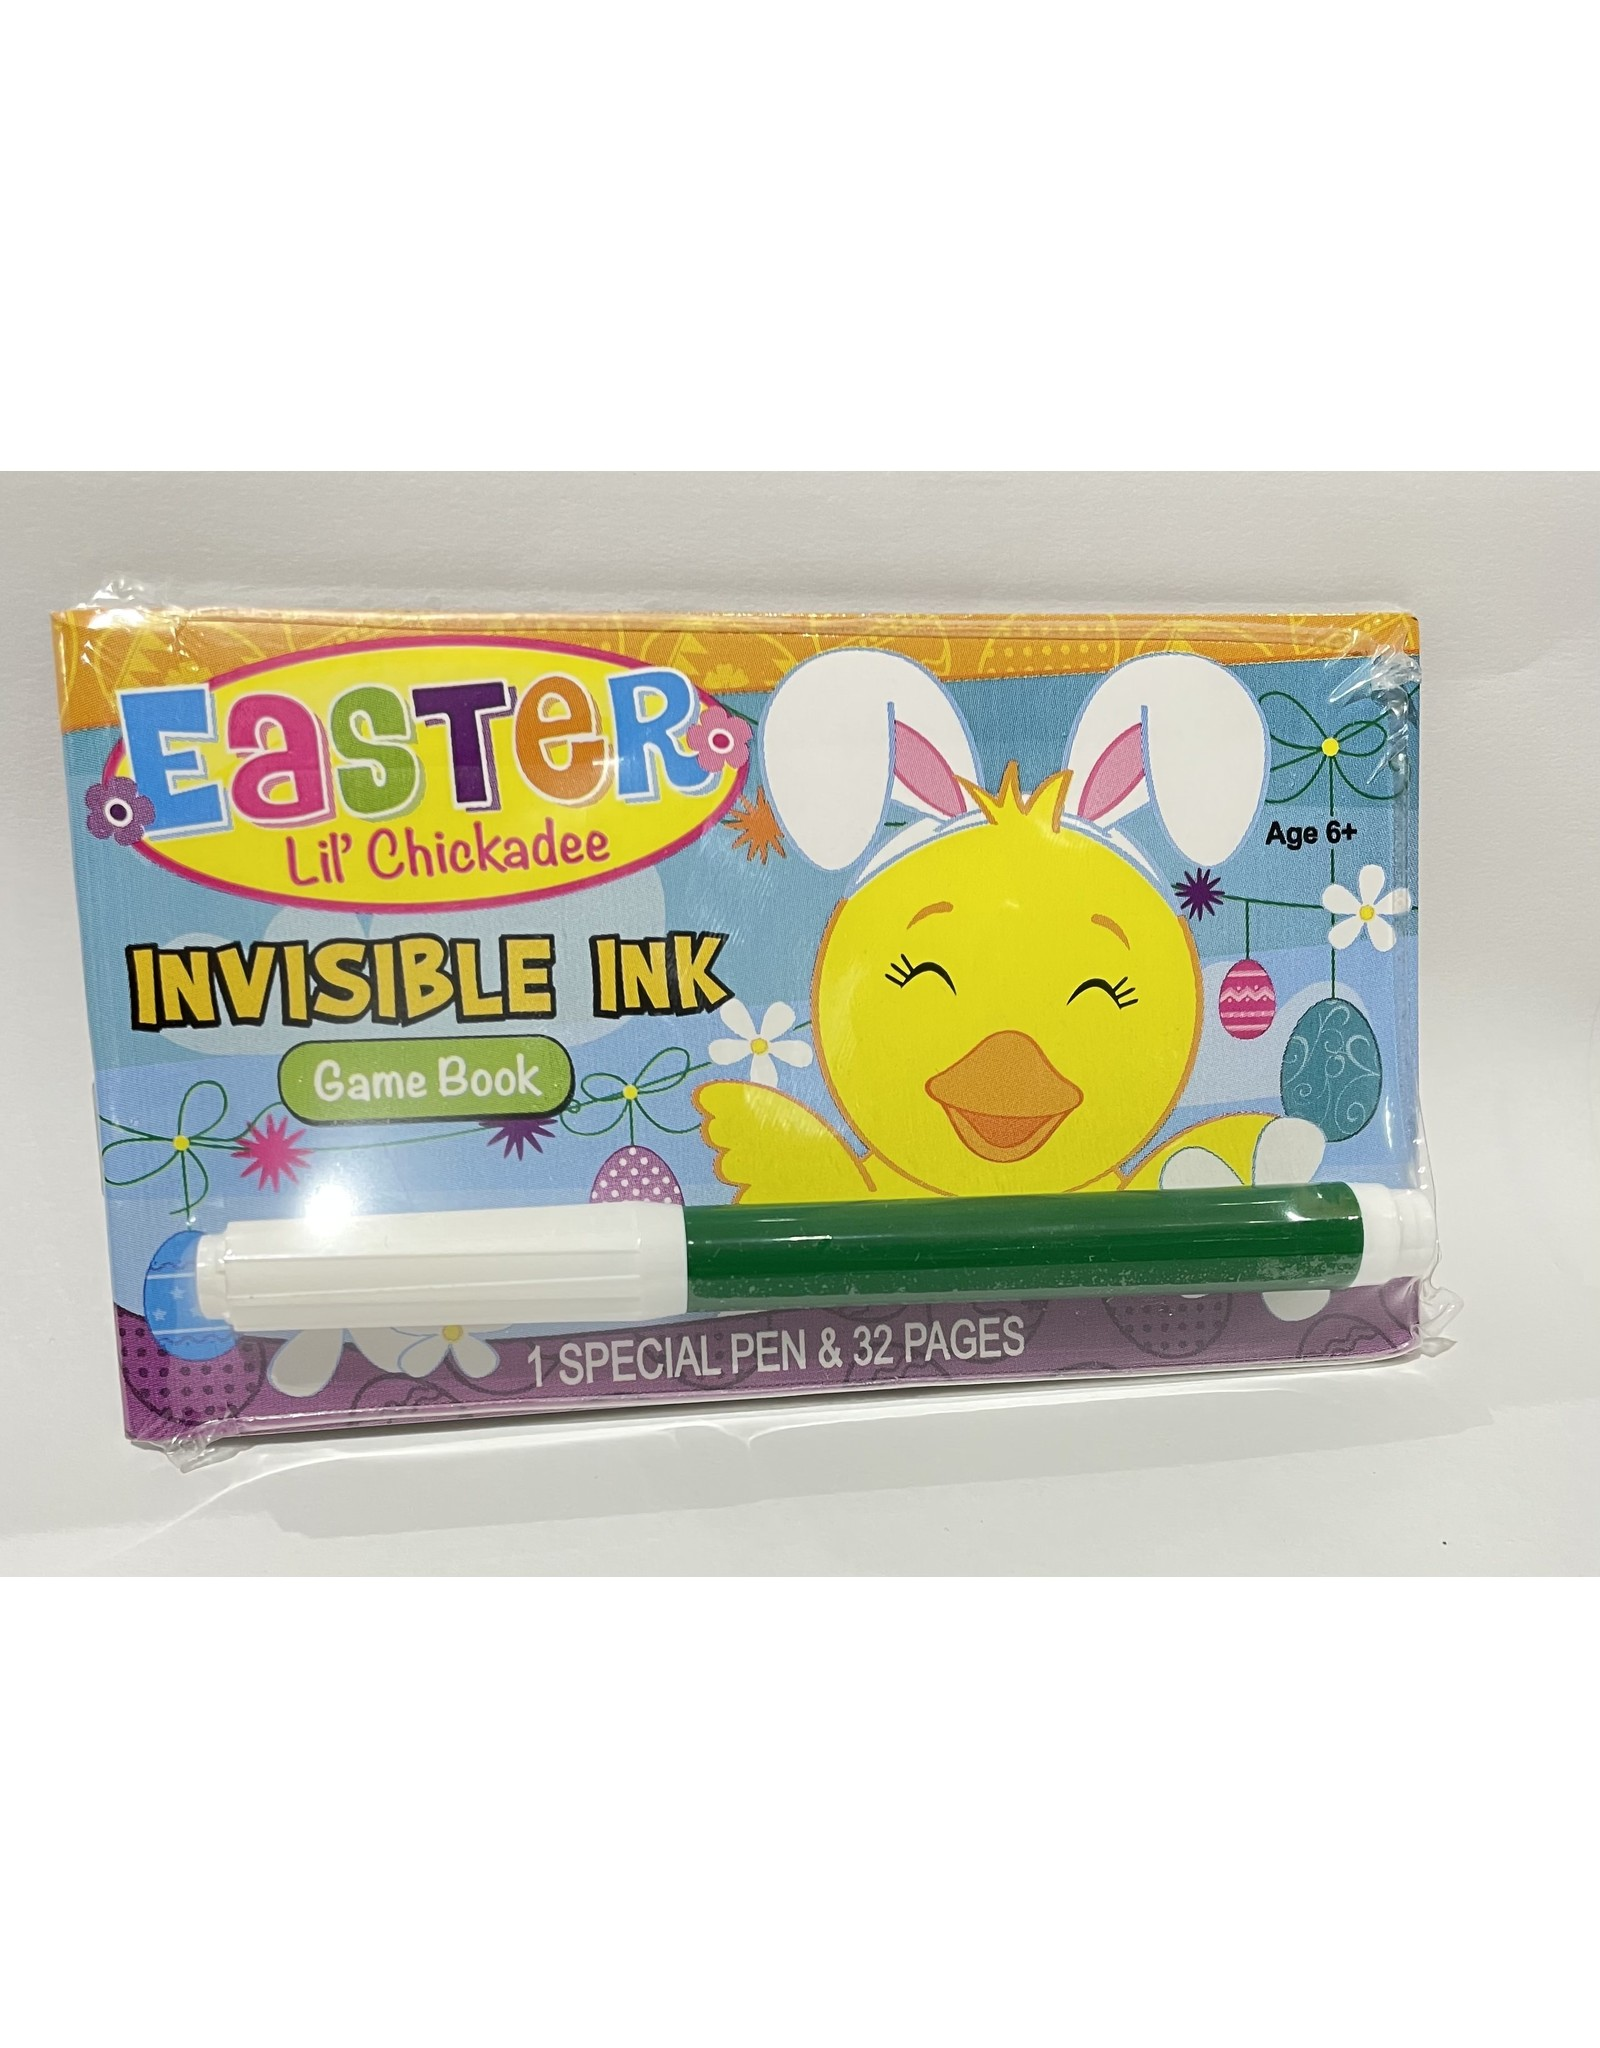 Lil' Chickadee Invisible Ink Game Book